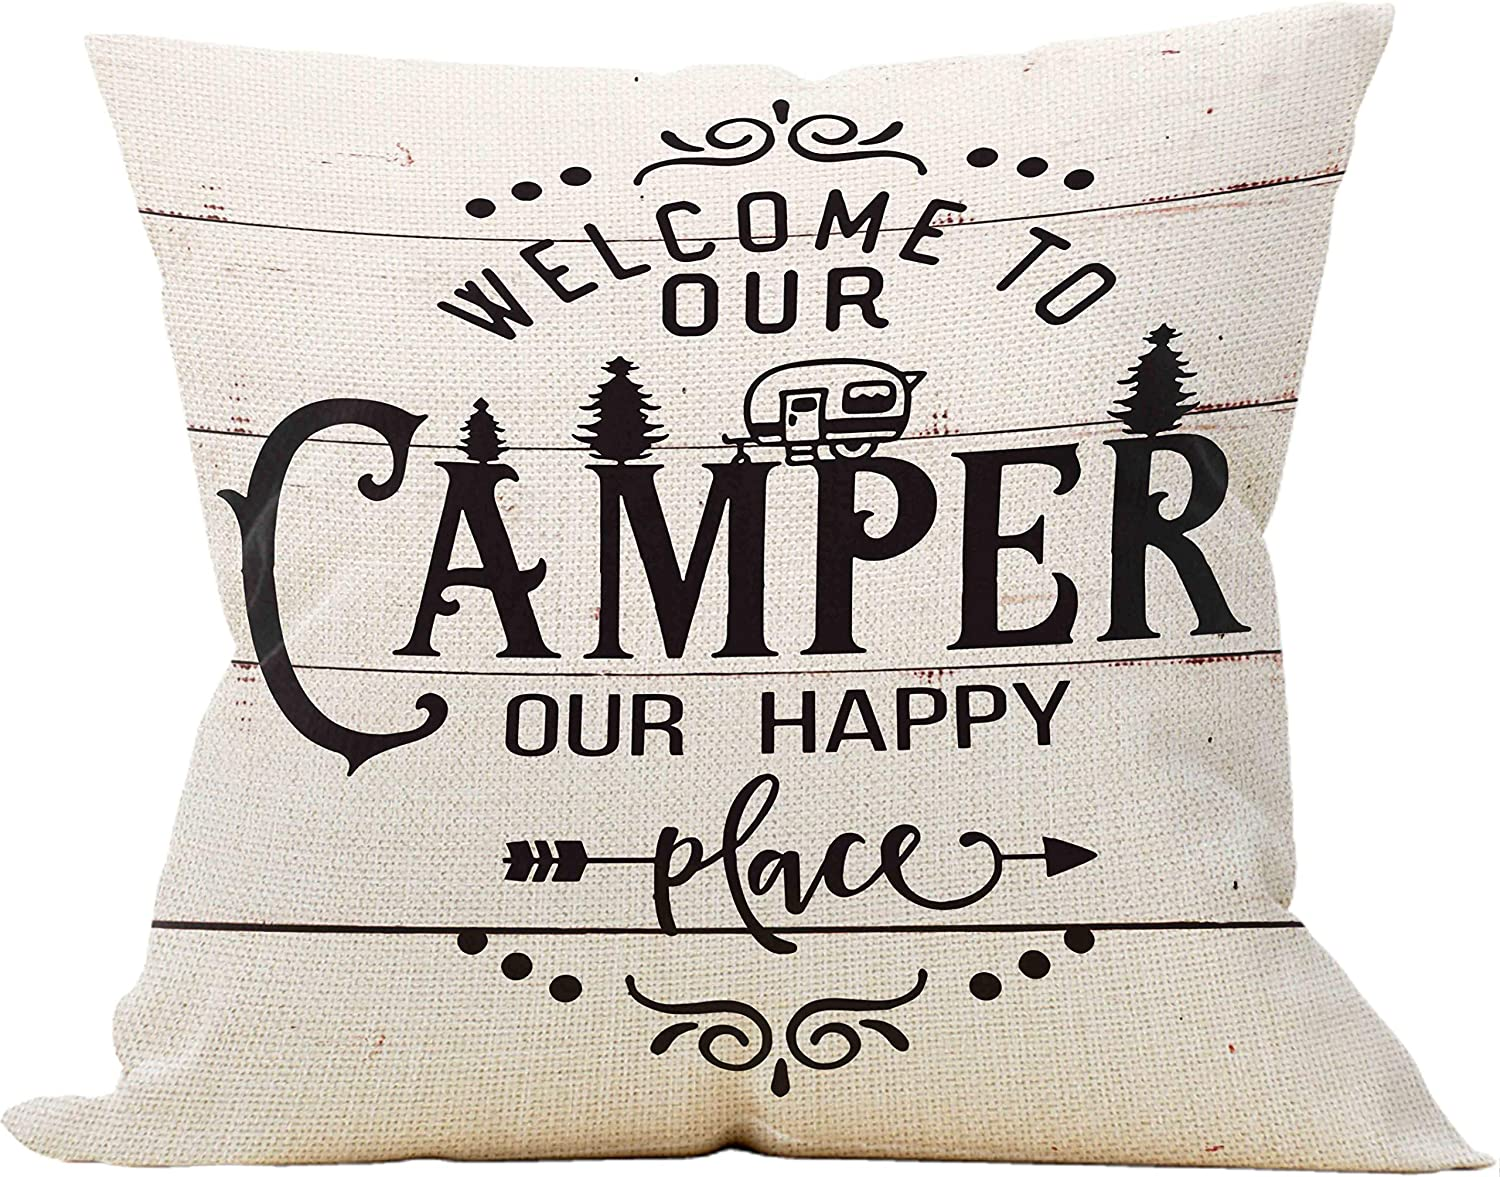 Mancheng-zi Welcome to Our Camper Our Happy Place Throw Pillow Case, Campers Gifts, Camper Decor, 18 x 18 Inch Trailer RV Pillow Decorative Linen Cushion Cover for Sofa Couch Bed